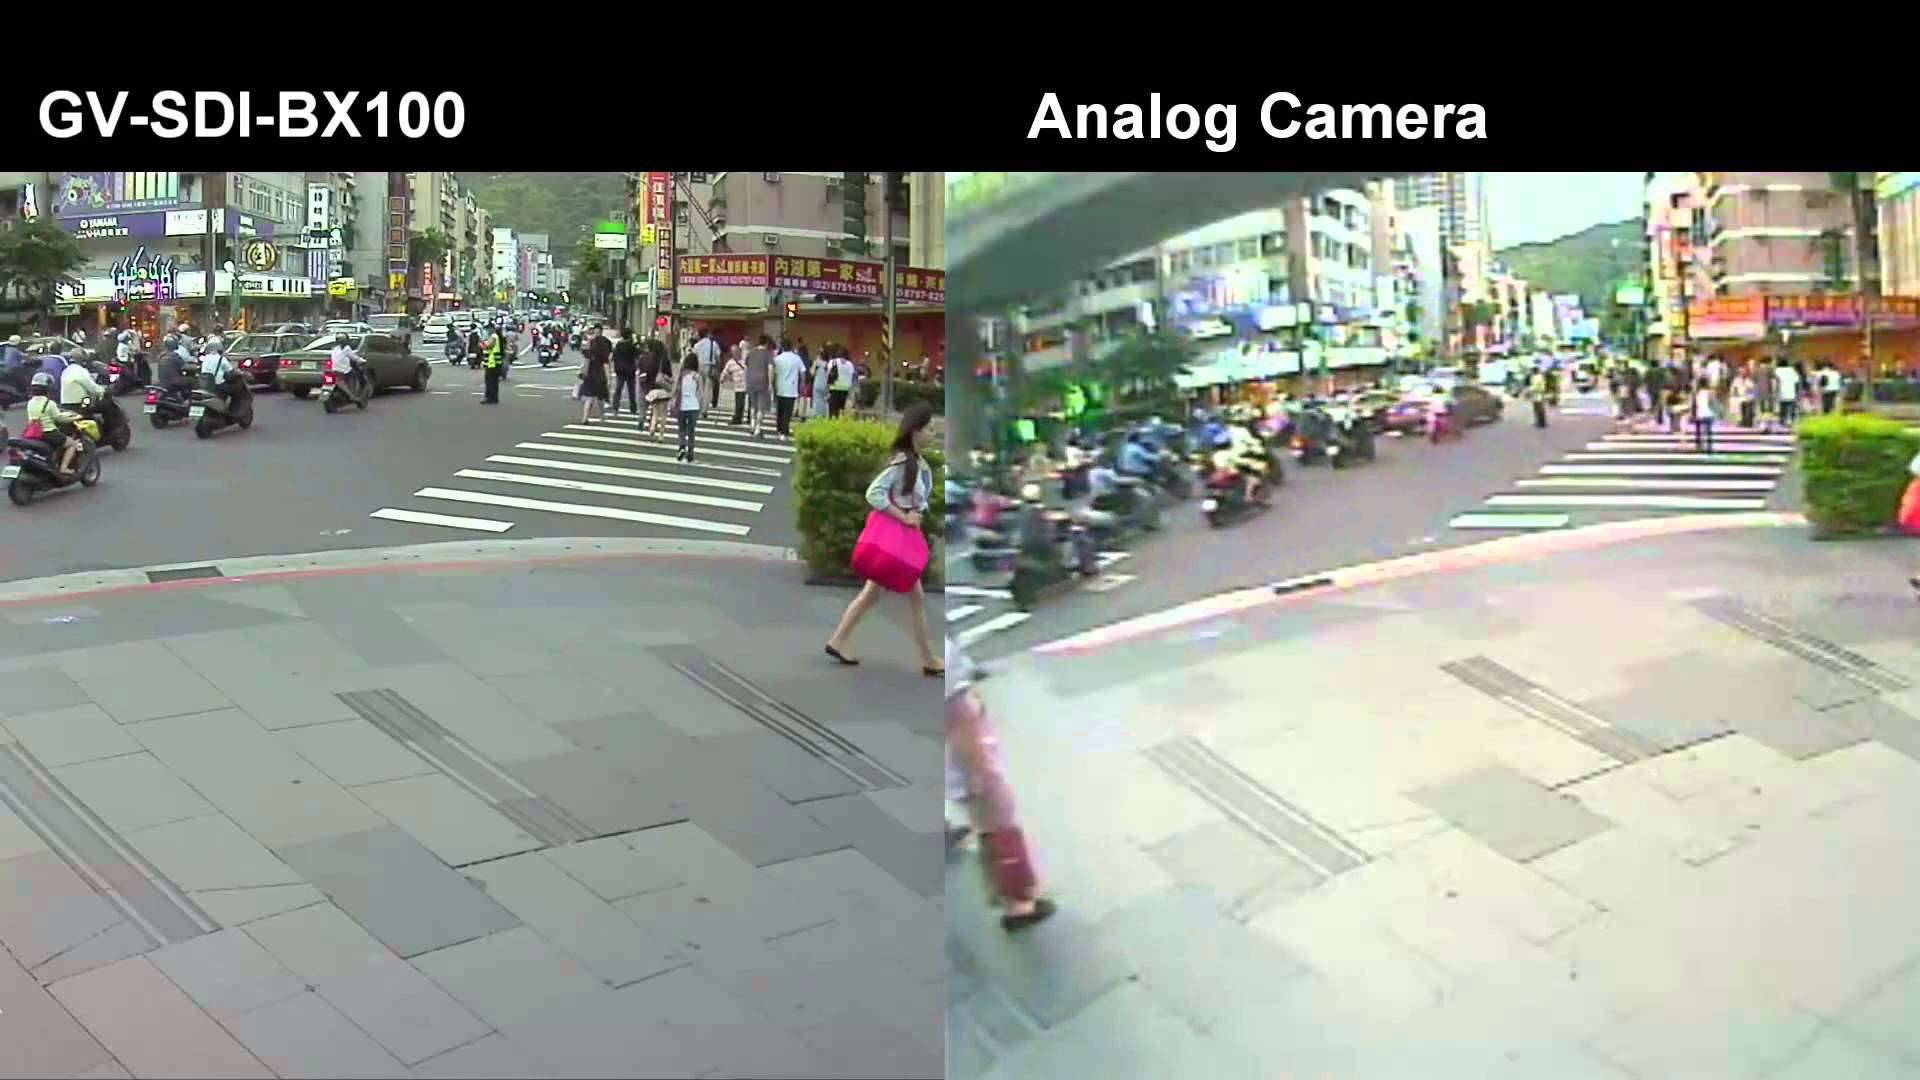 HD SDI vs analog recording quality comparison 1